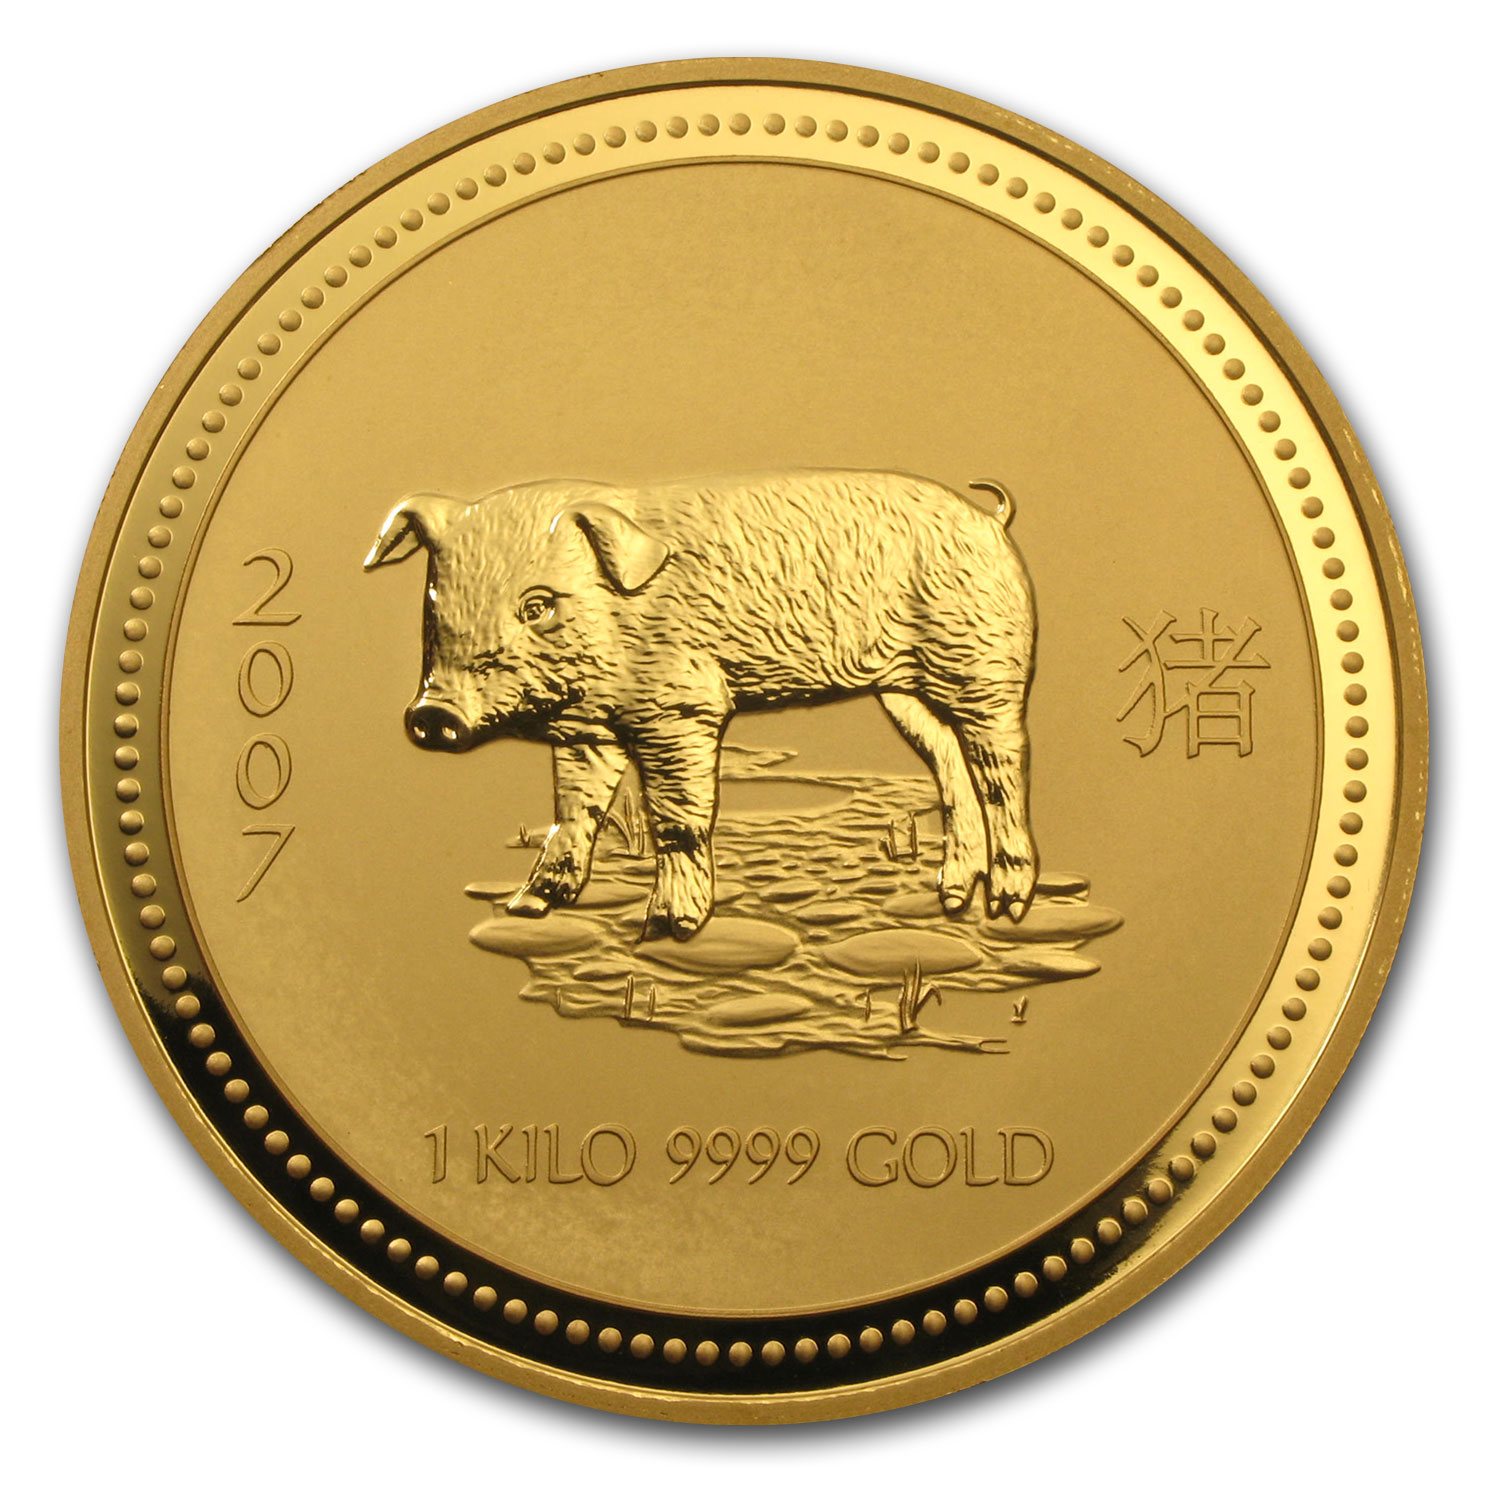 2007 1 kilo (32.15 oz) Gold Year of the Pig Lunar (Series I)